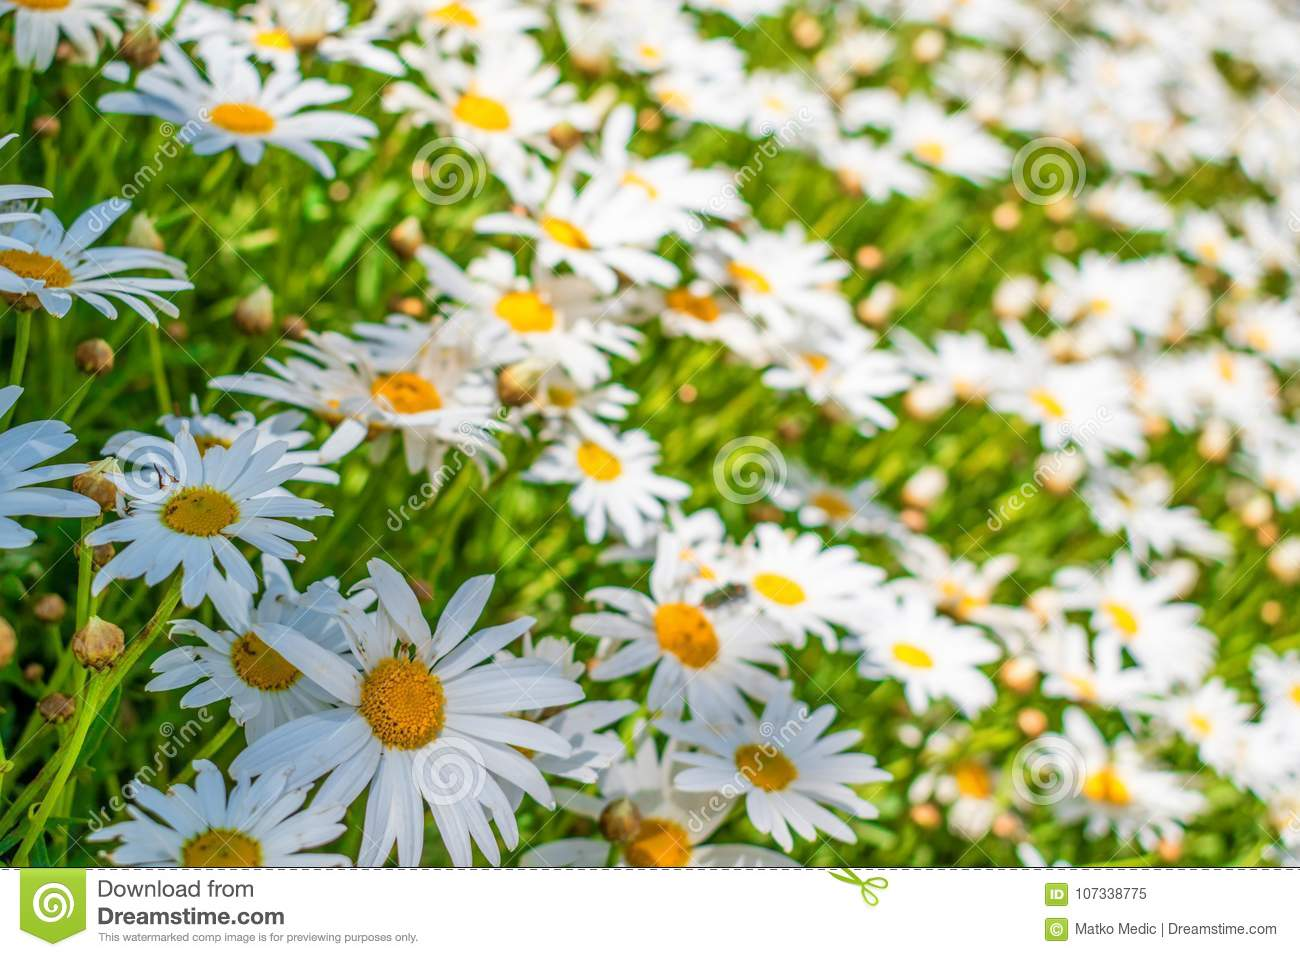 Field of white daisy flowers 3 stock image image of beautiful download field of white daisy flowers 3 stock image image of beautiful flower izmirmasajfo